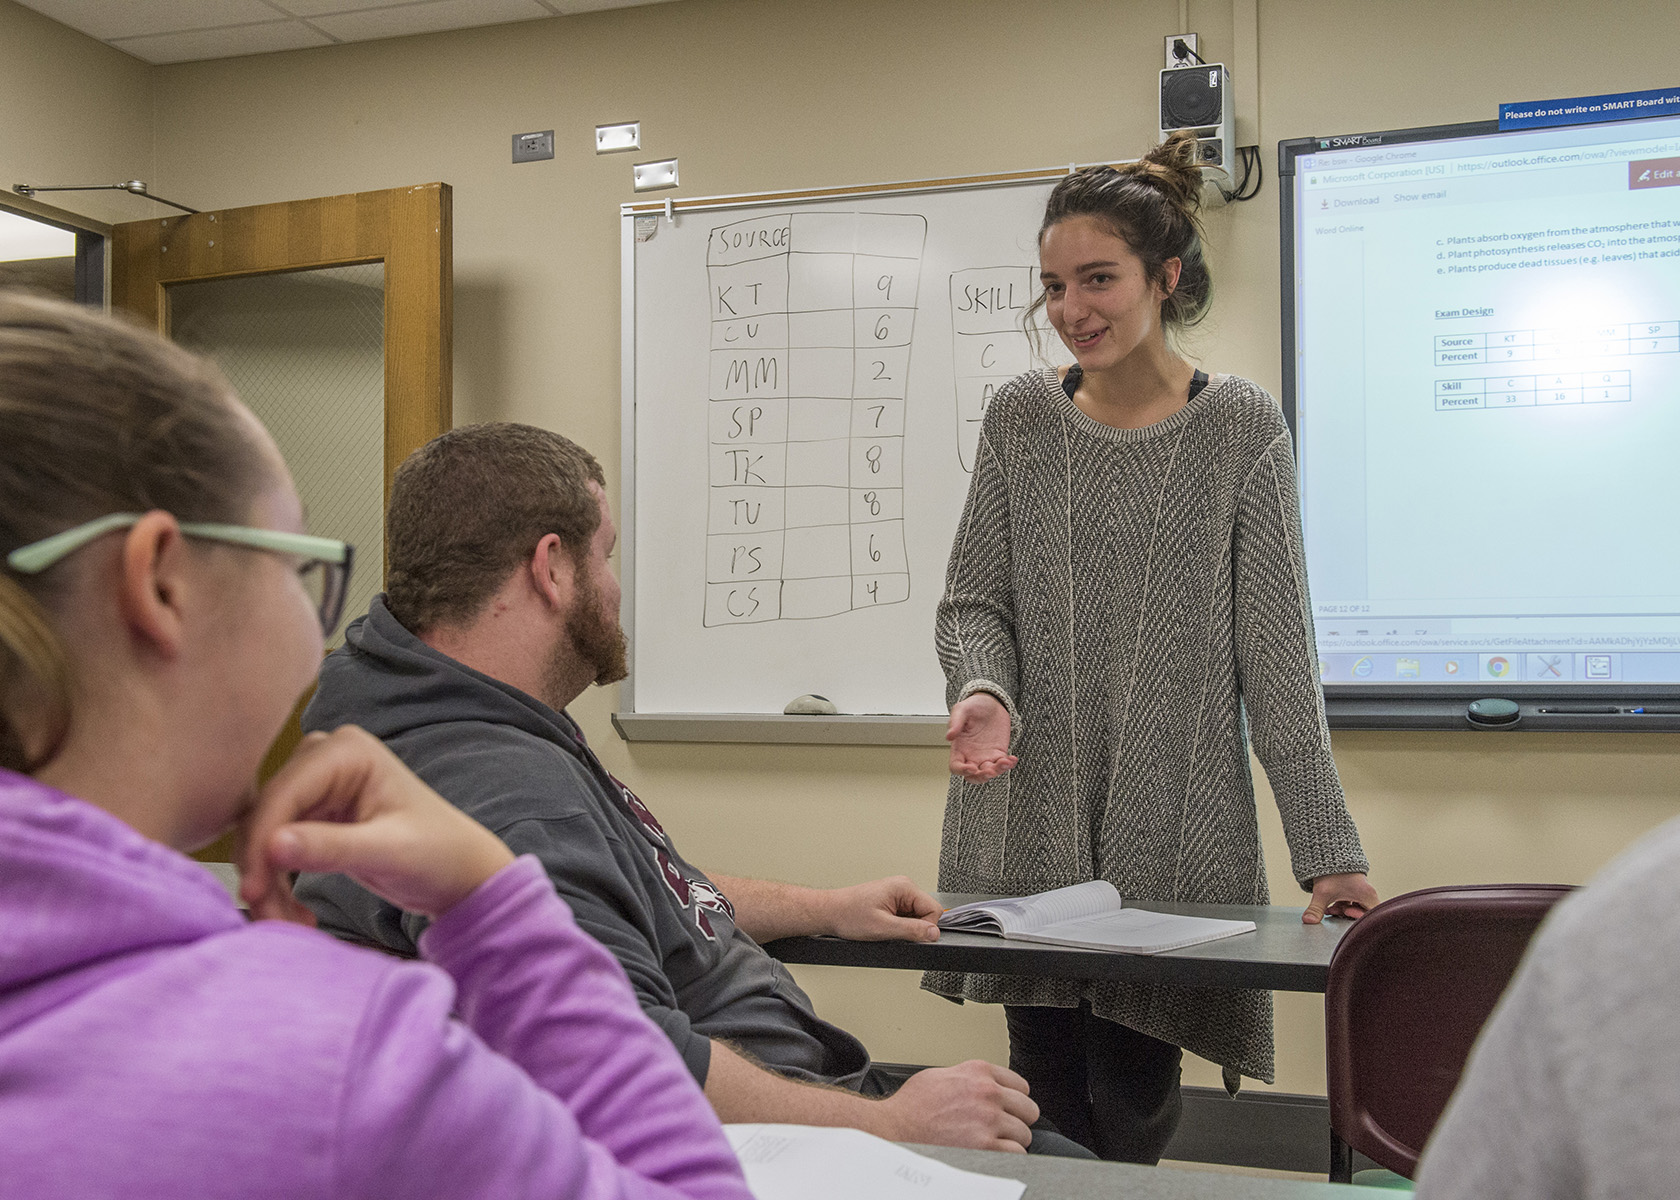 Undergrad research leads to new approach in microbiology class